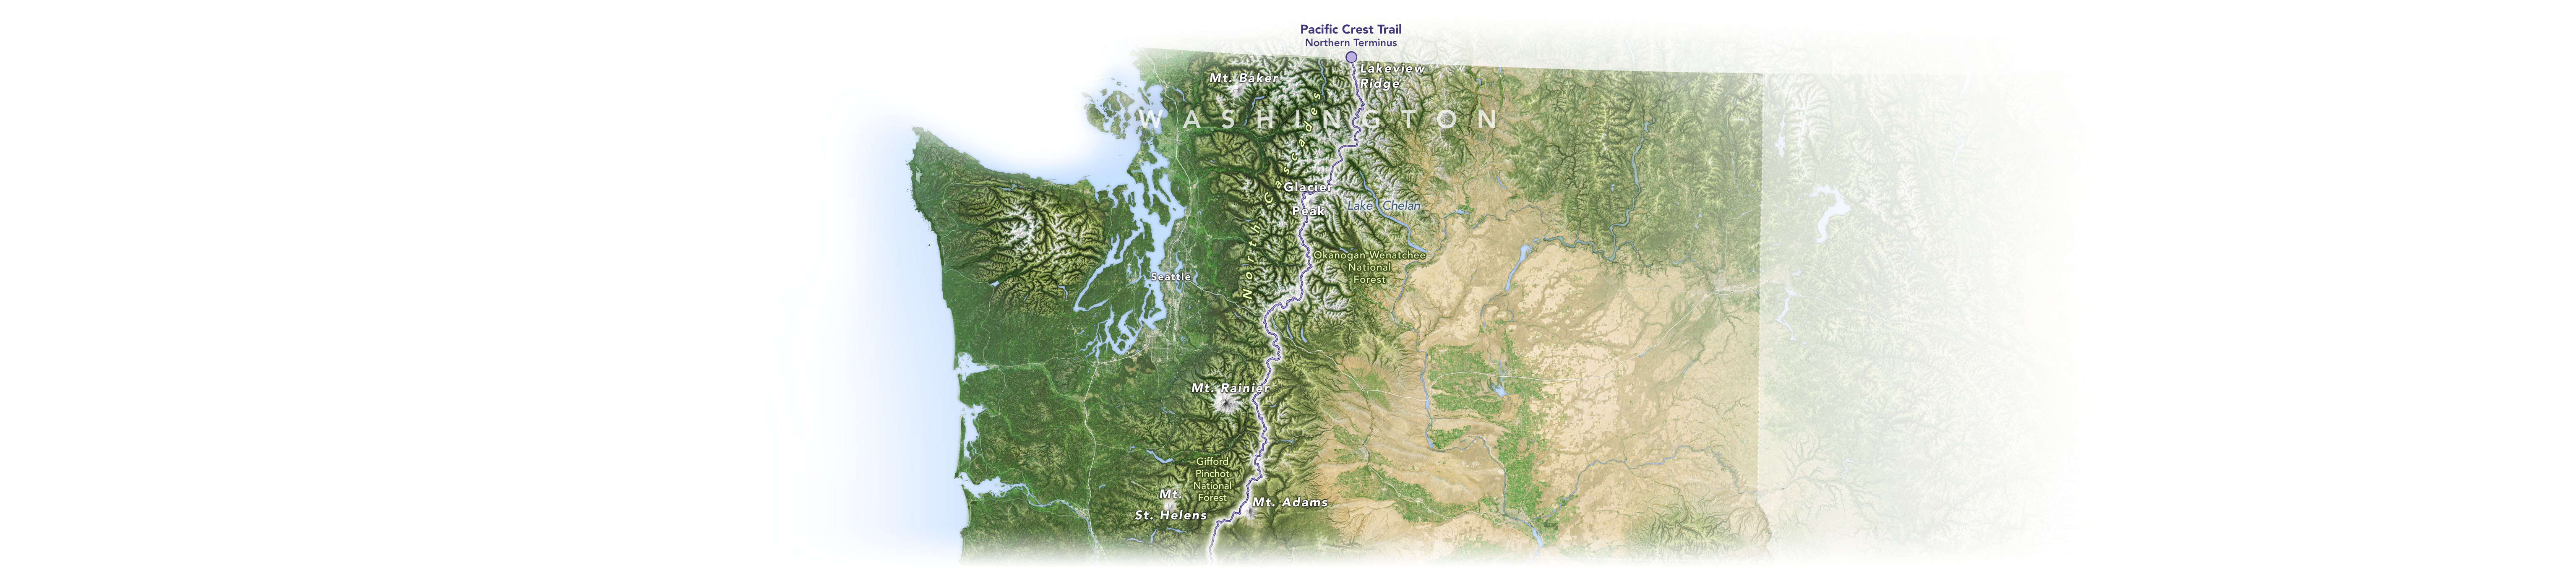 A map of the Pacific Crest Trail and nearby landmarks in the state of Washington.